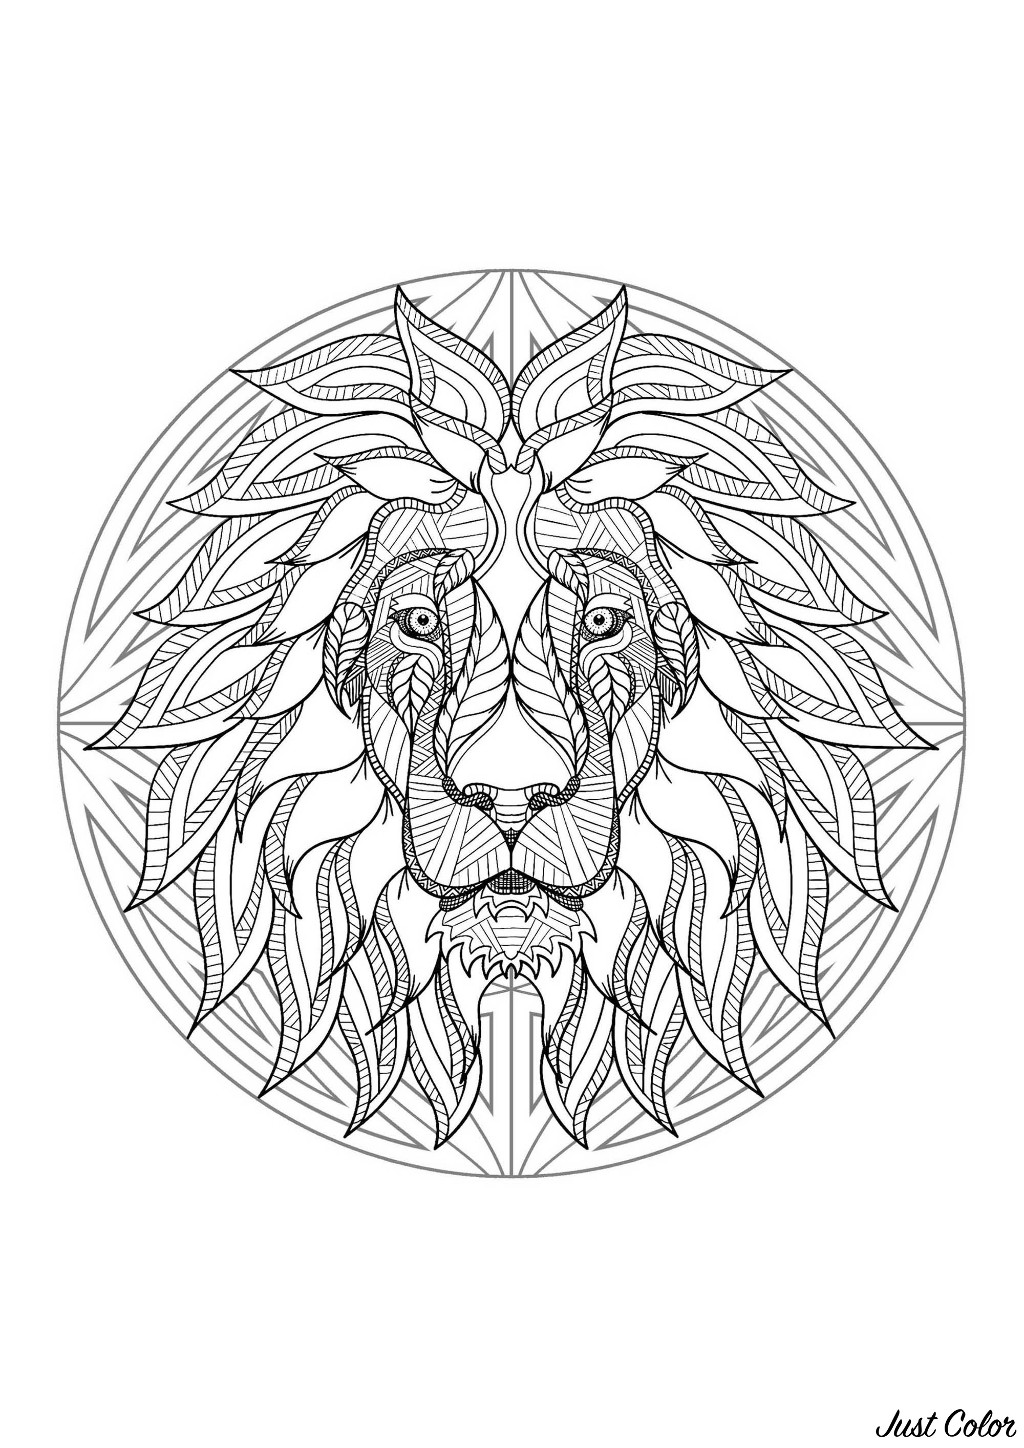 Mandala to color with very special Lion head and simple patterns in background